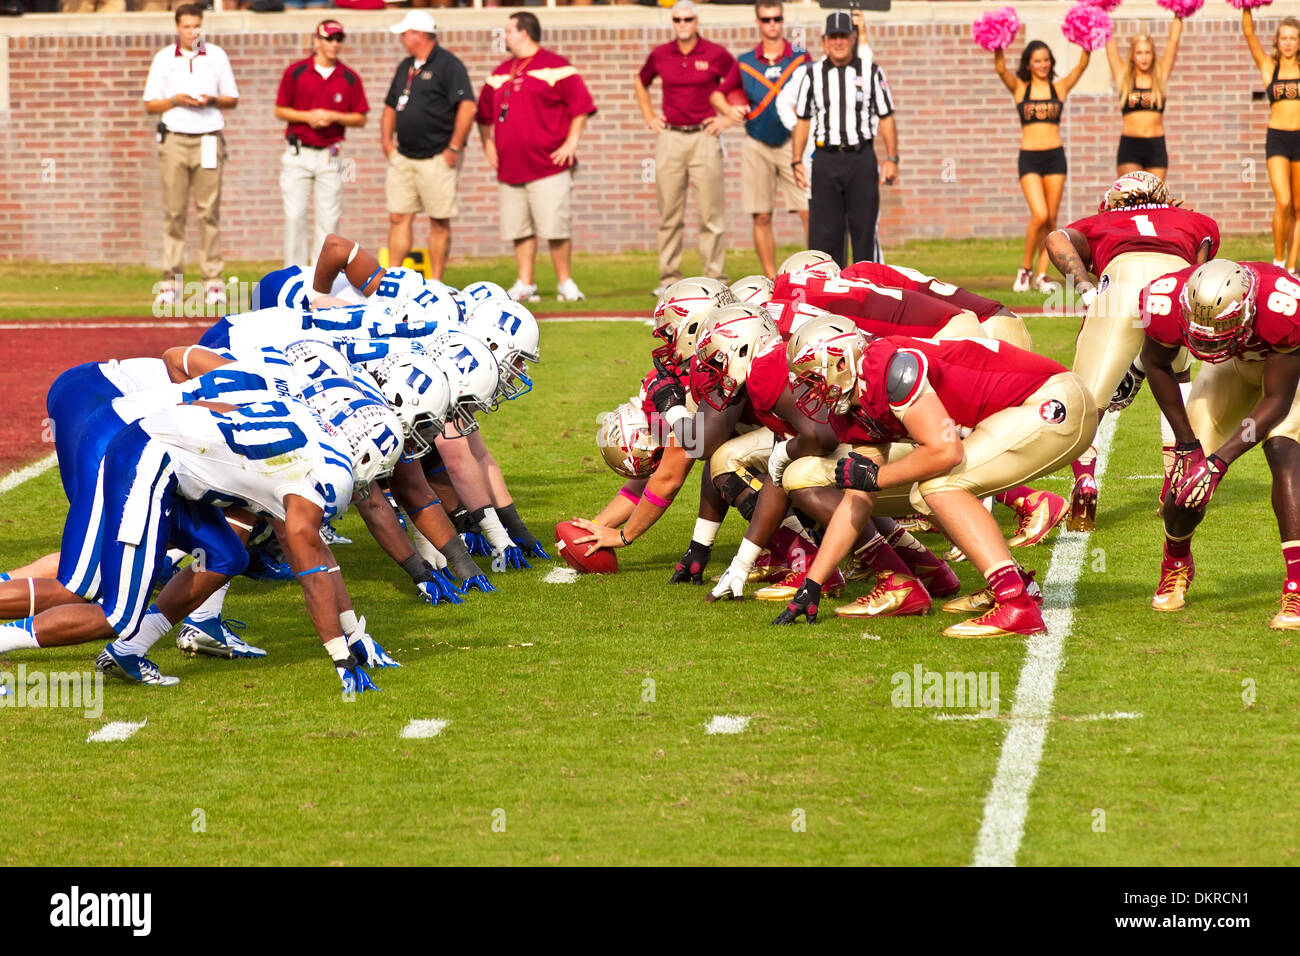 American Football Game in Florida - Stock Image